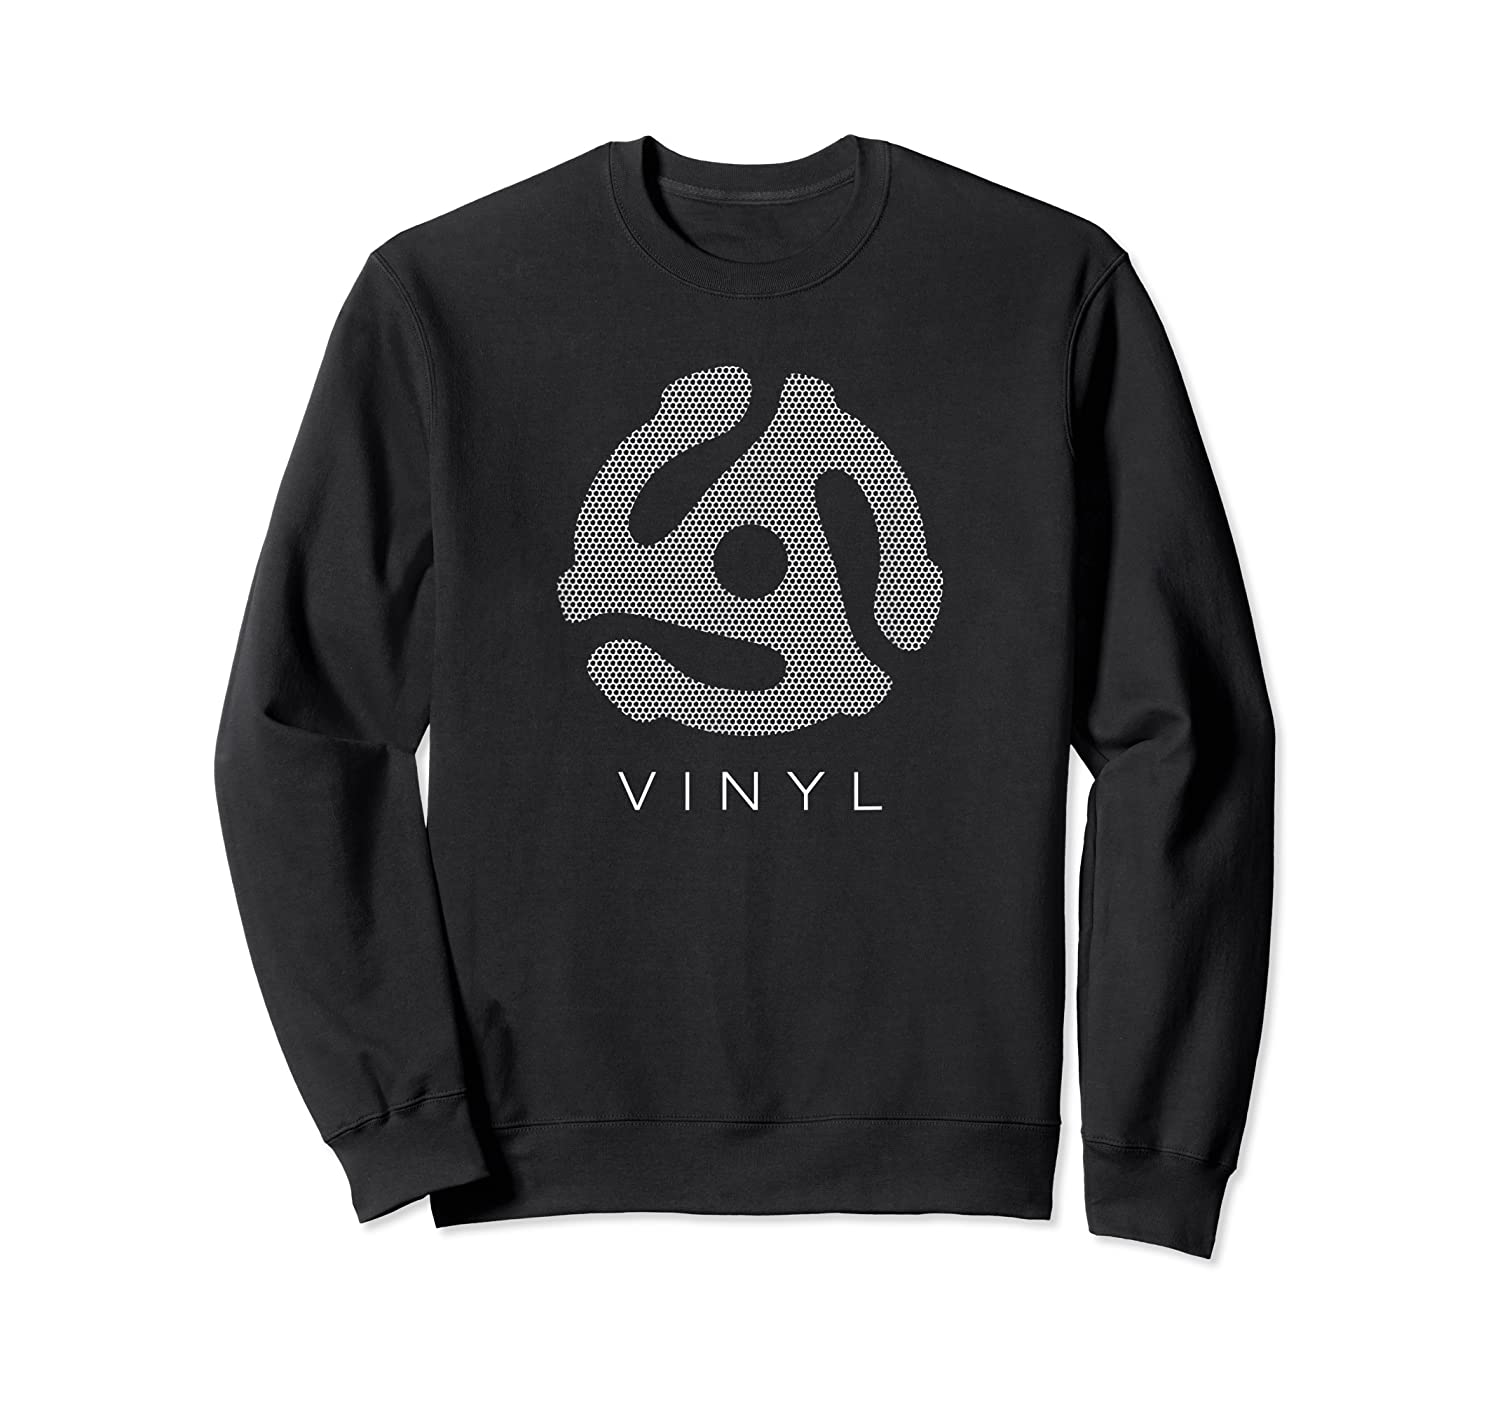 45 Rpm Record Adapter T Shirt - With Speaker Mesh Effect Crewneck Sweater